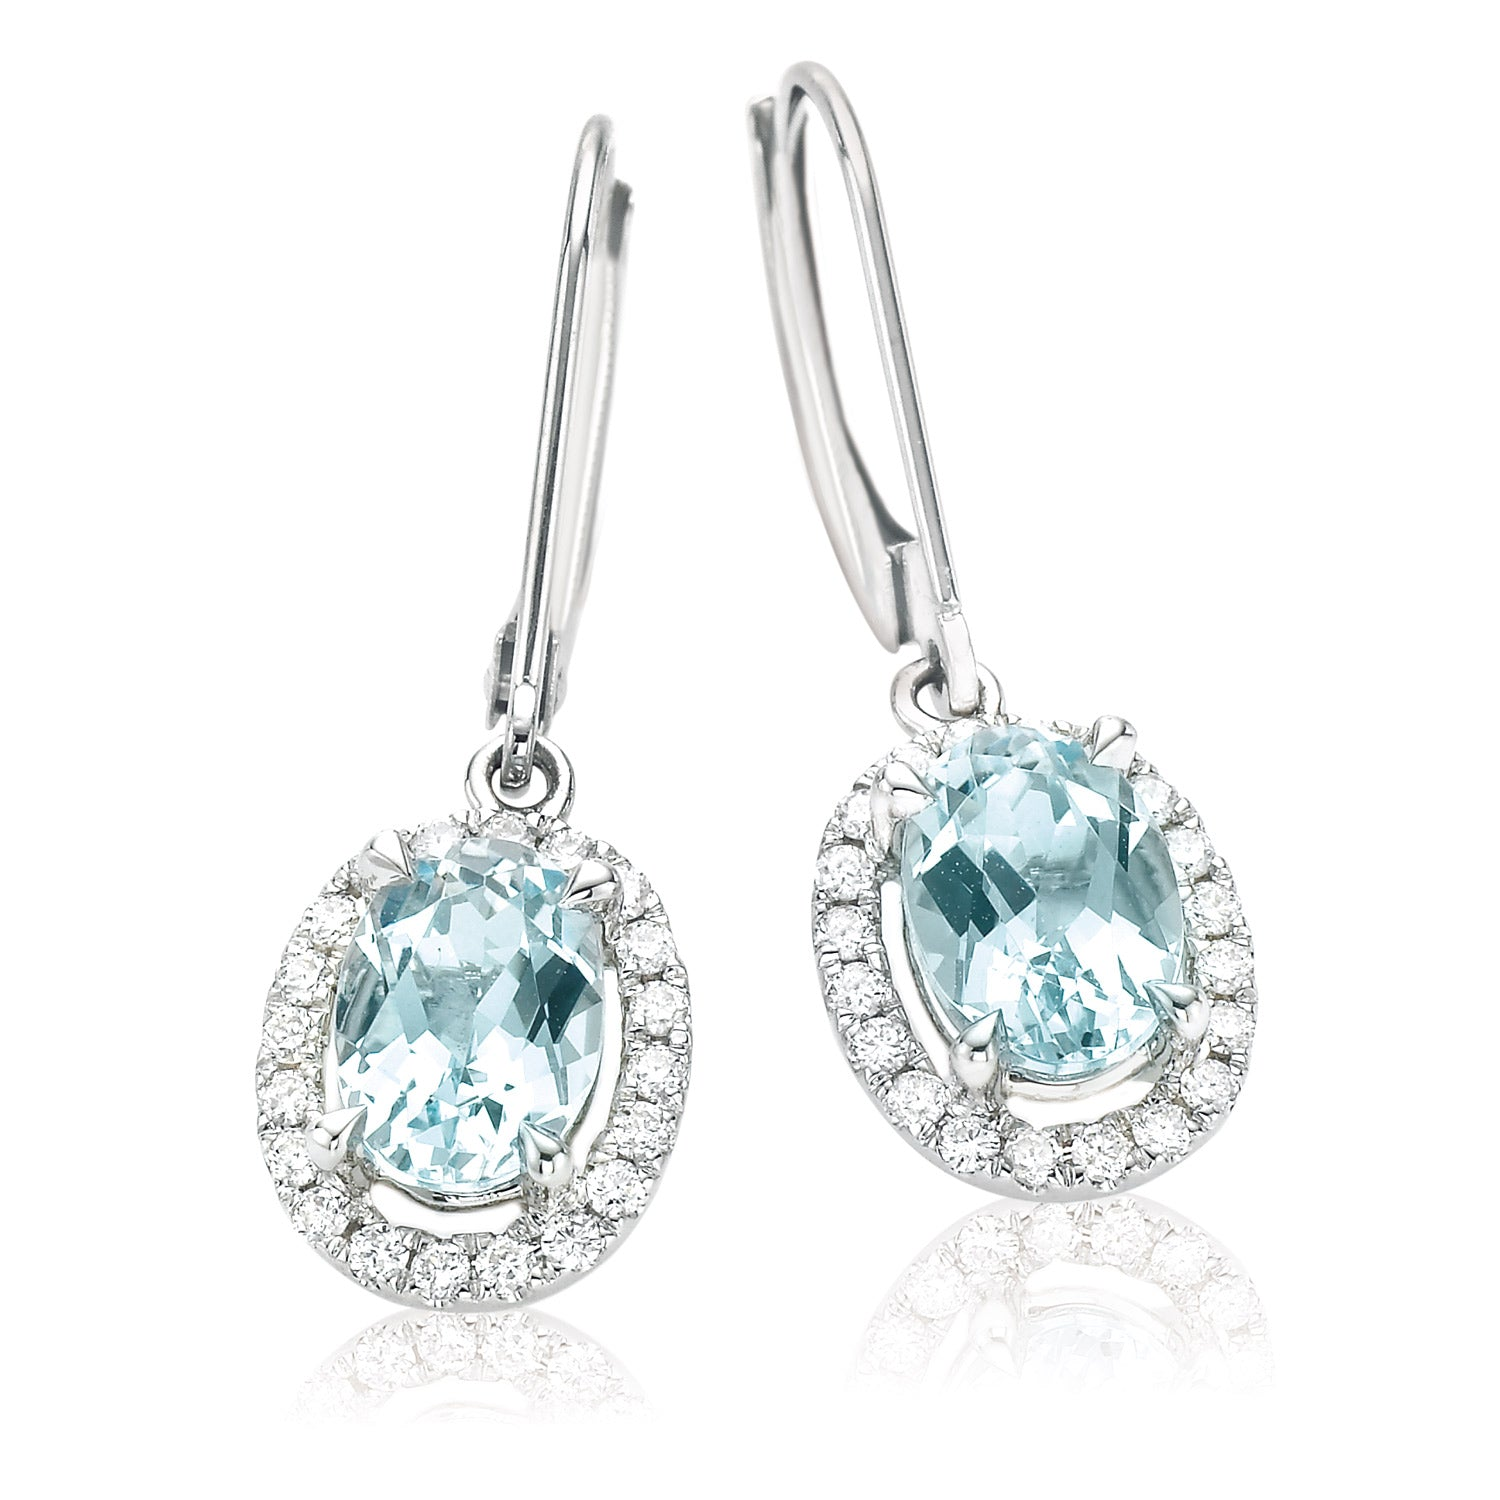 18ct White Gold Oval Cut Aquamarine with 0.20 CARAT tw of Diamonds